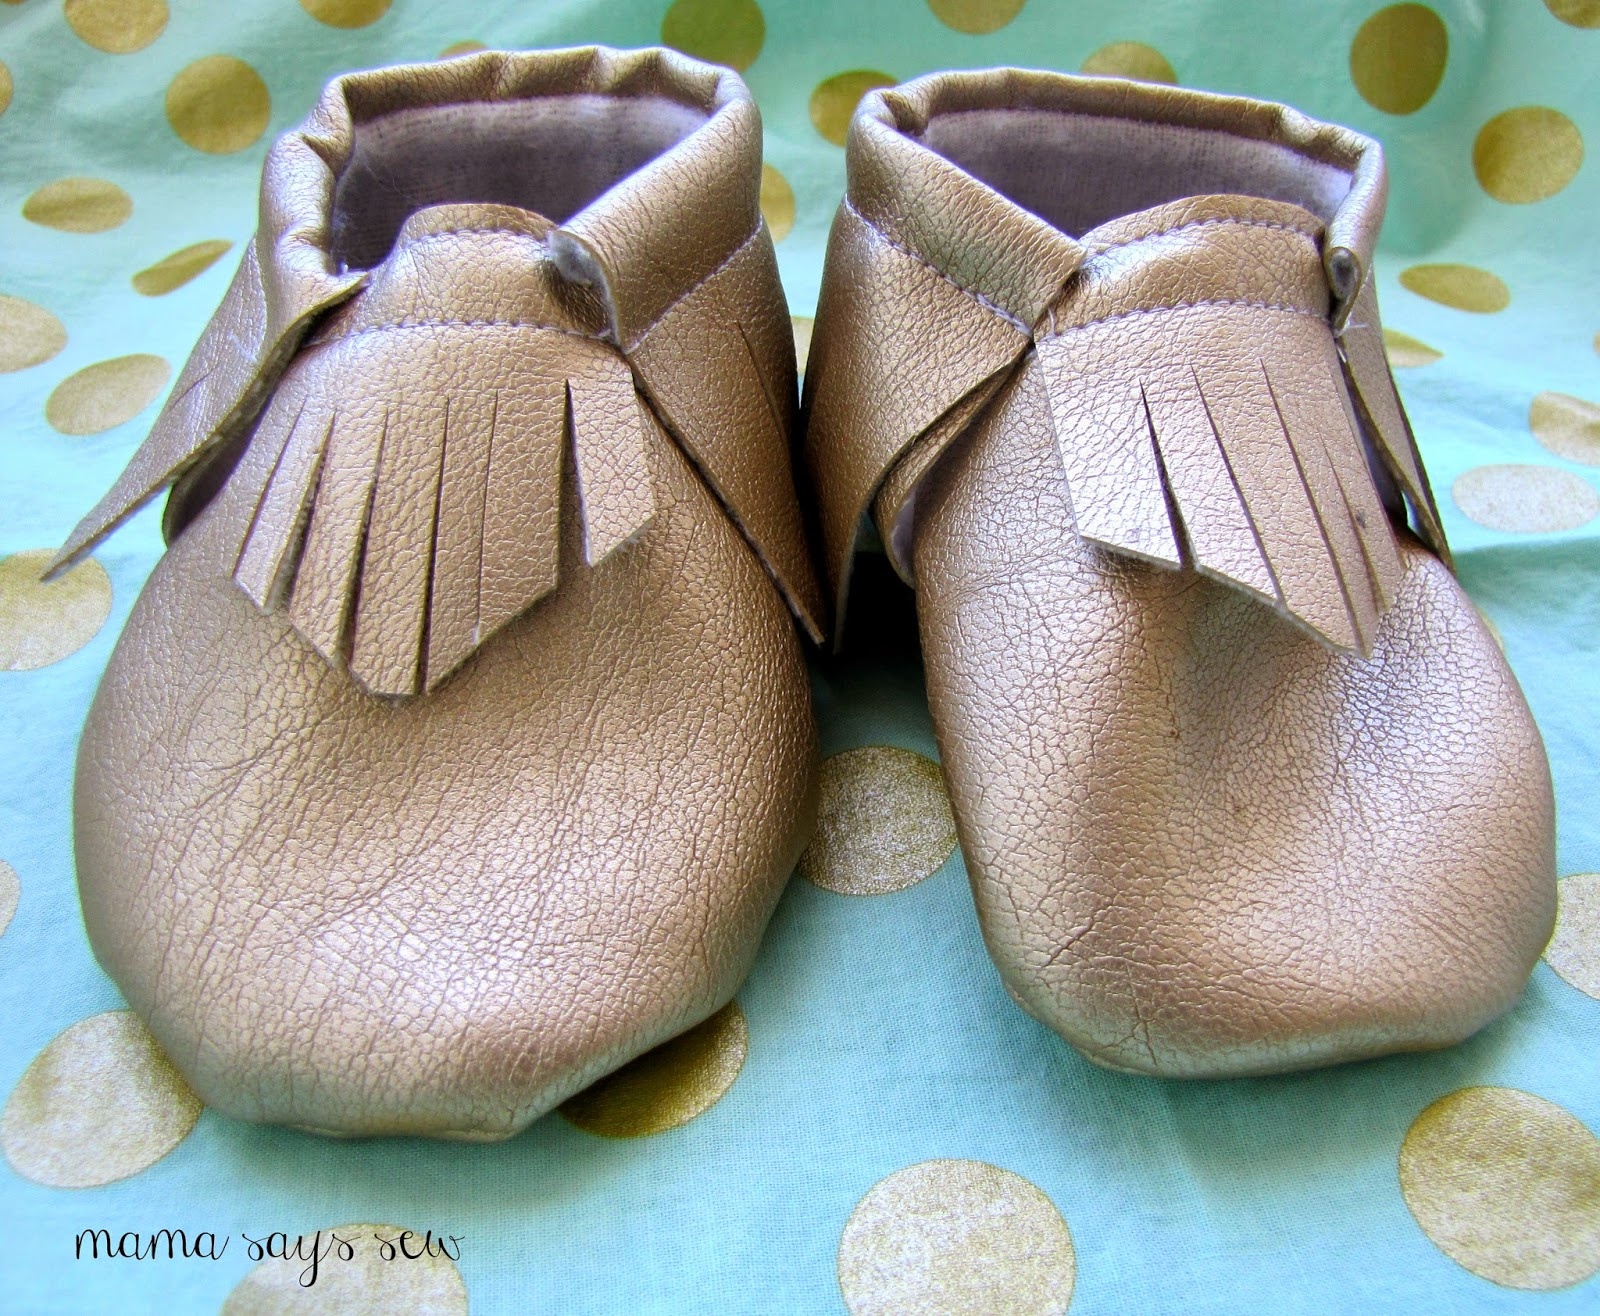 mama says sew: Free Baby Moccasin Pattern